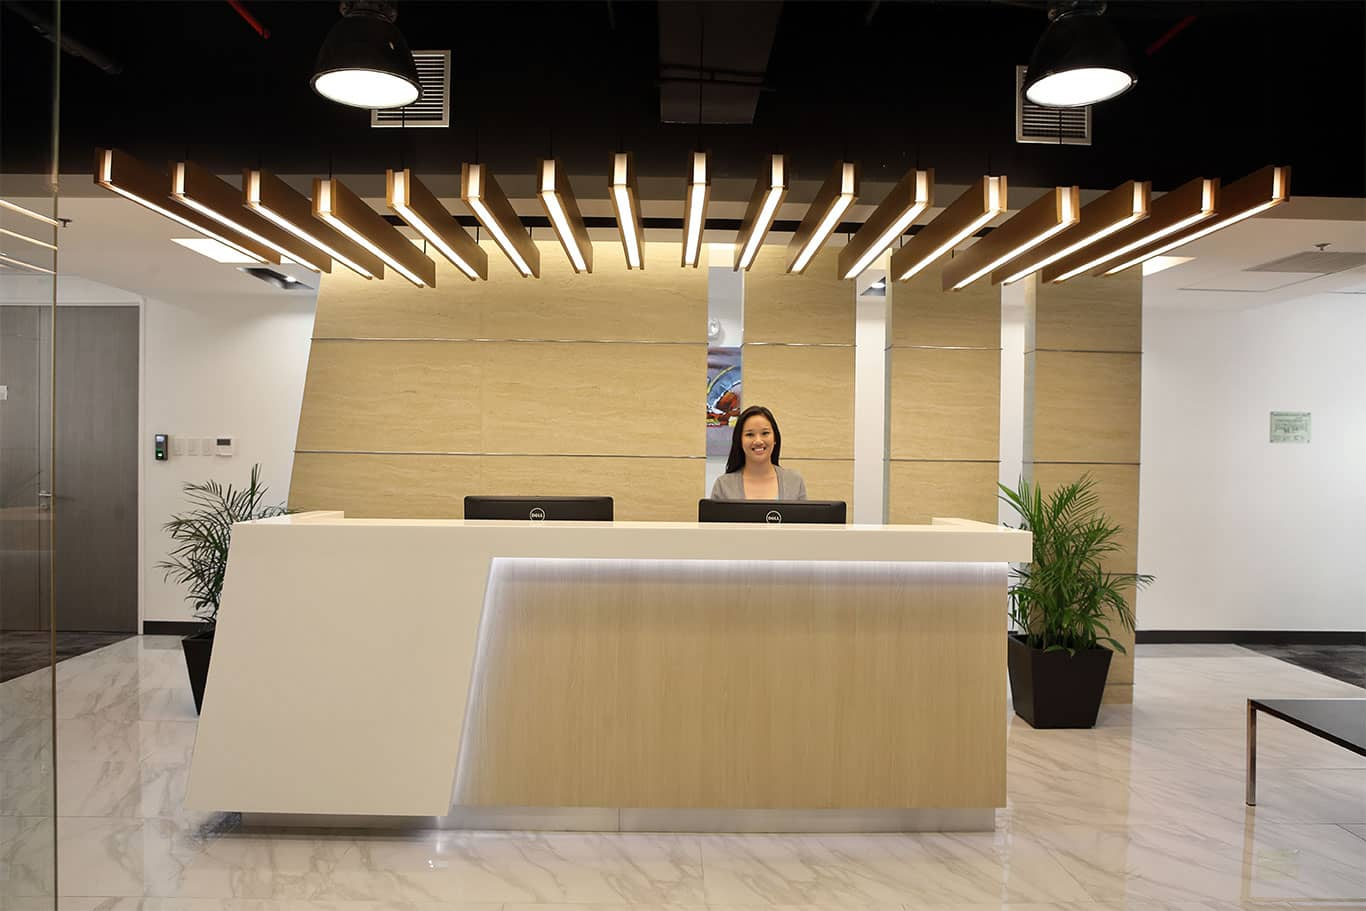 KMC Reception Area at Rockwell Business Center Facility in Ortigas, Pasig, Manila, Philippines - EpicSpace